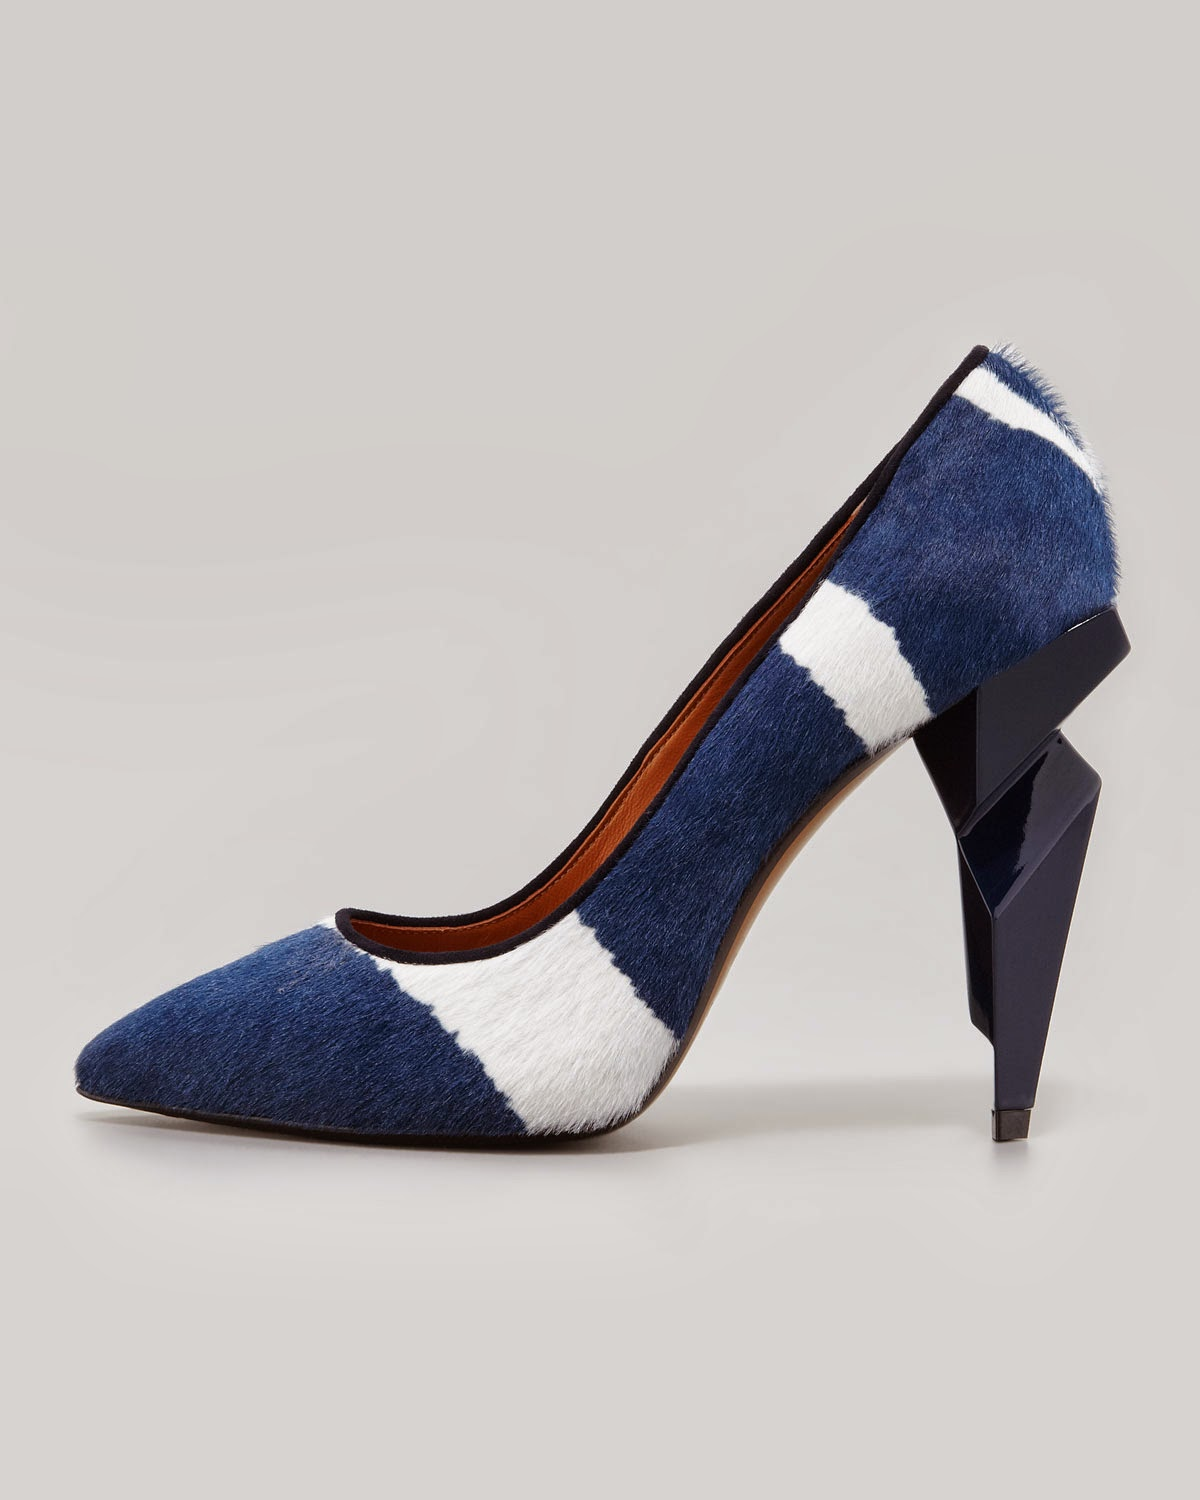 Fendi Zebra-Print Diamond Heel Pump Blue/White